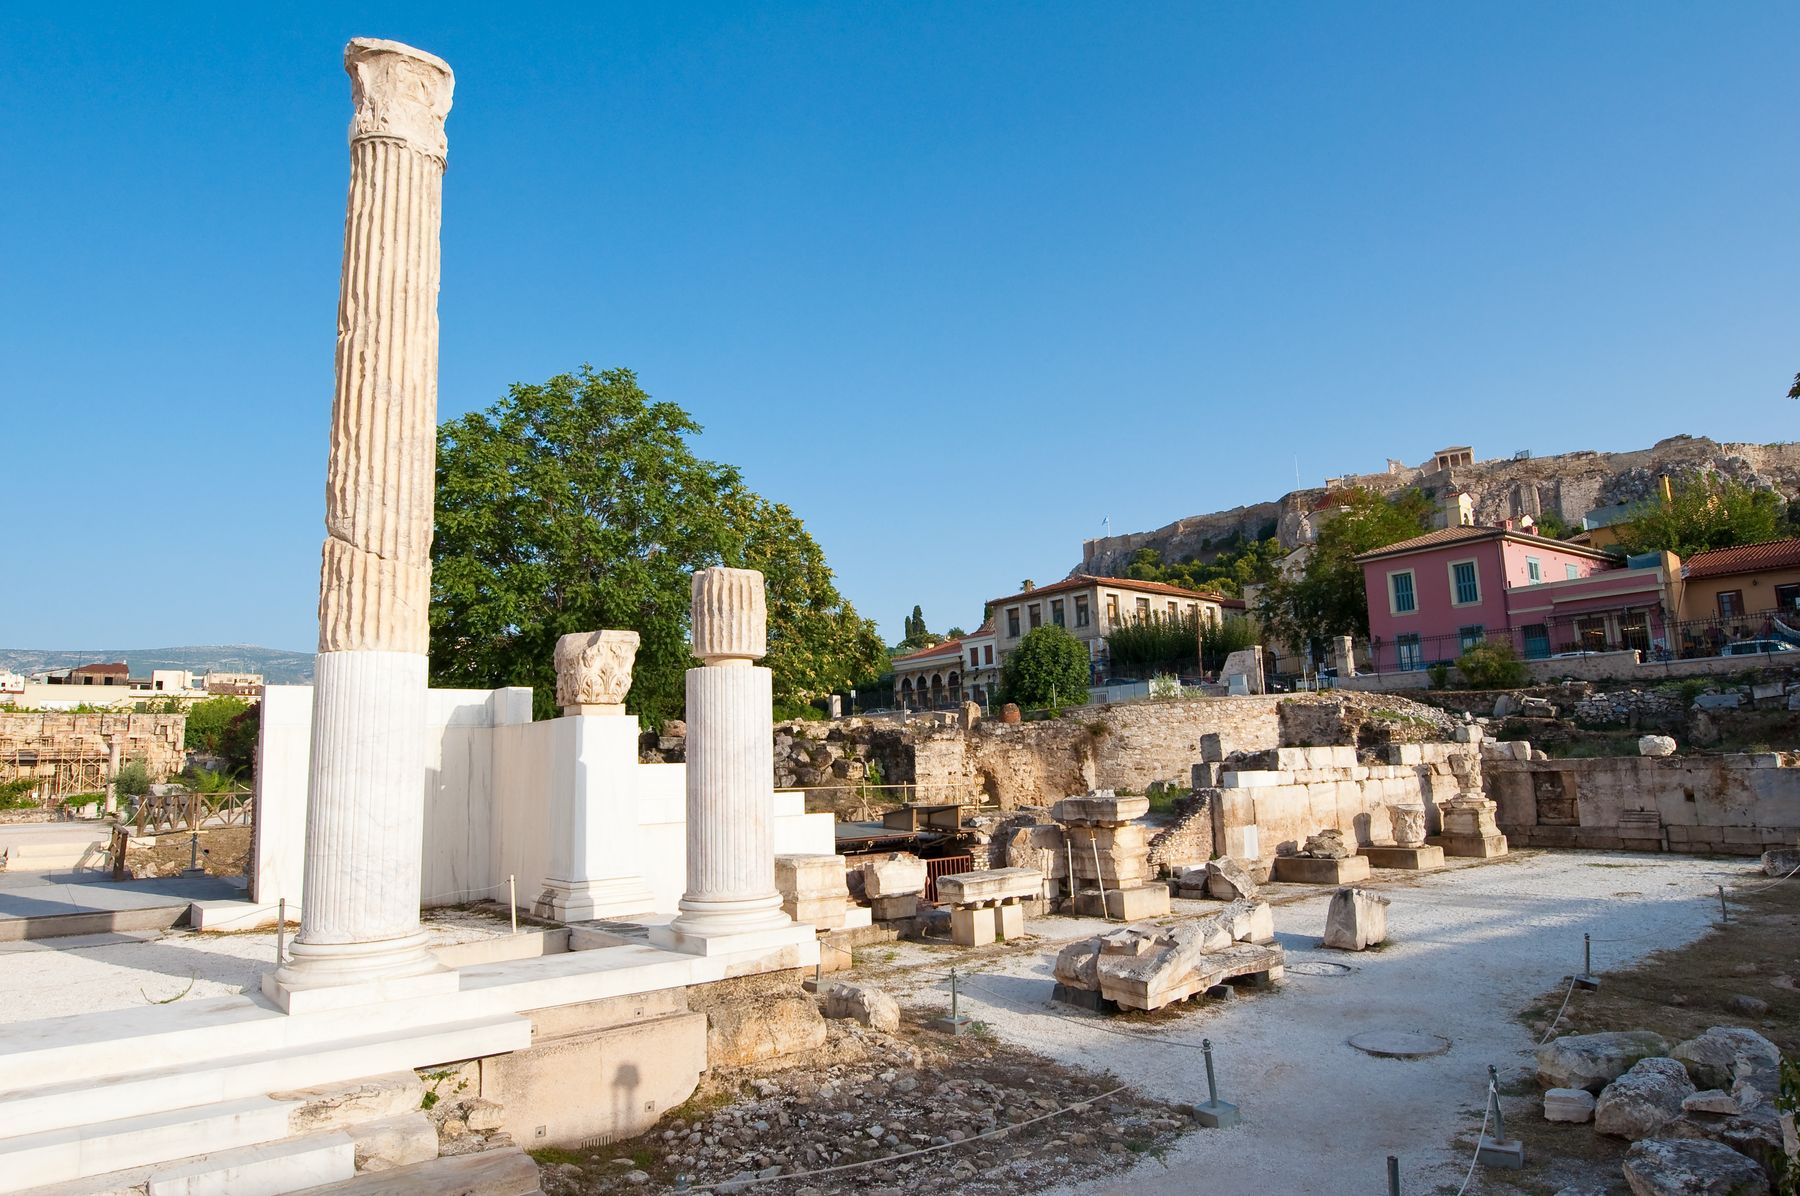 Greece is open so you can visit outdoor museums like these ancient ruins in Athens, as well as indoor venues.